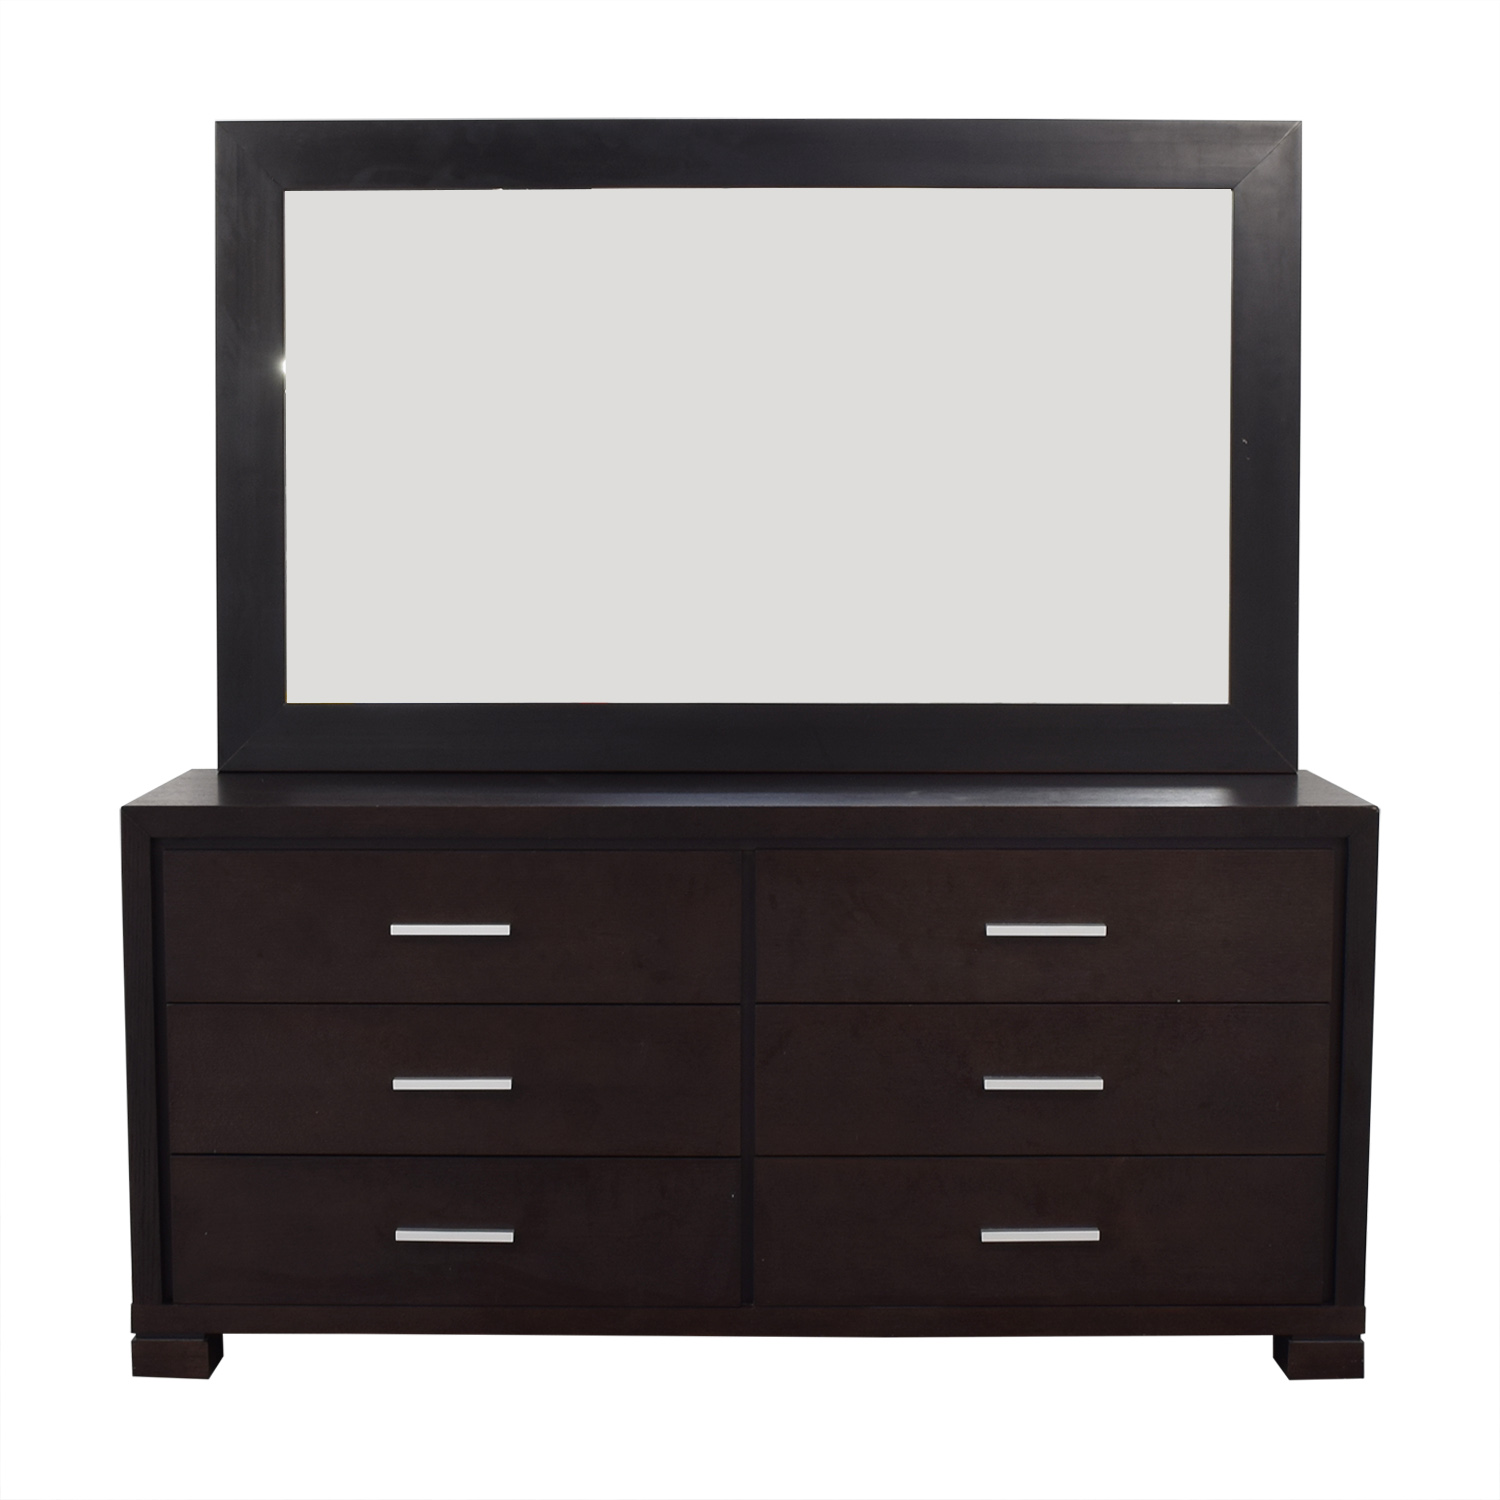 shop Dark Wood Dresser and Matching Mirror